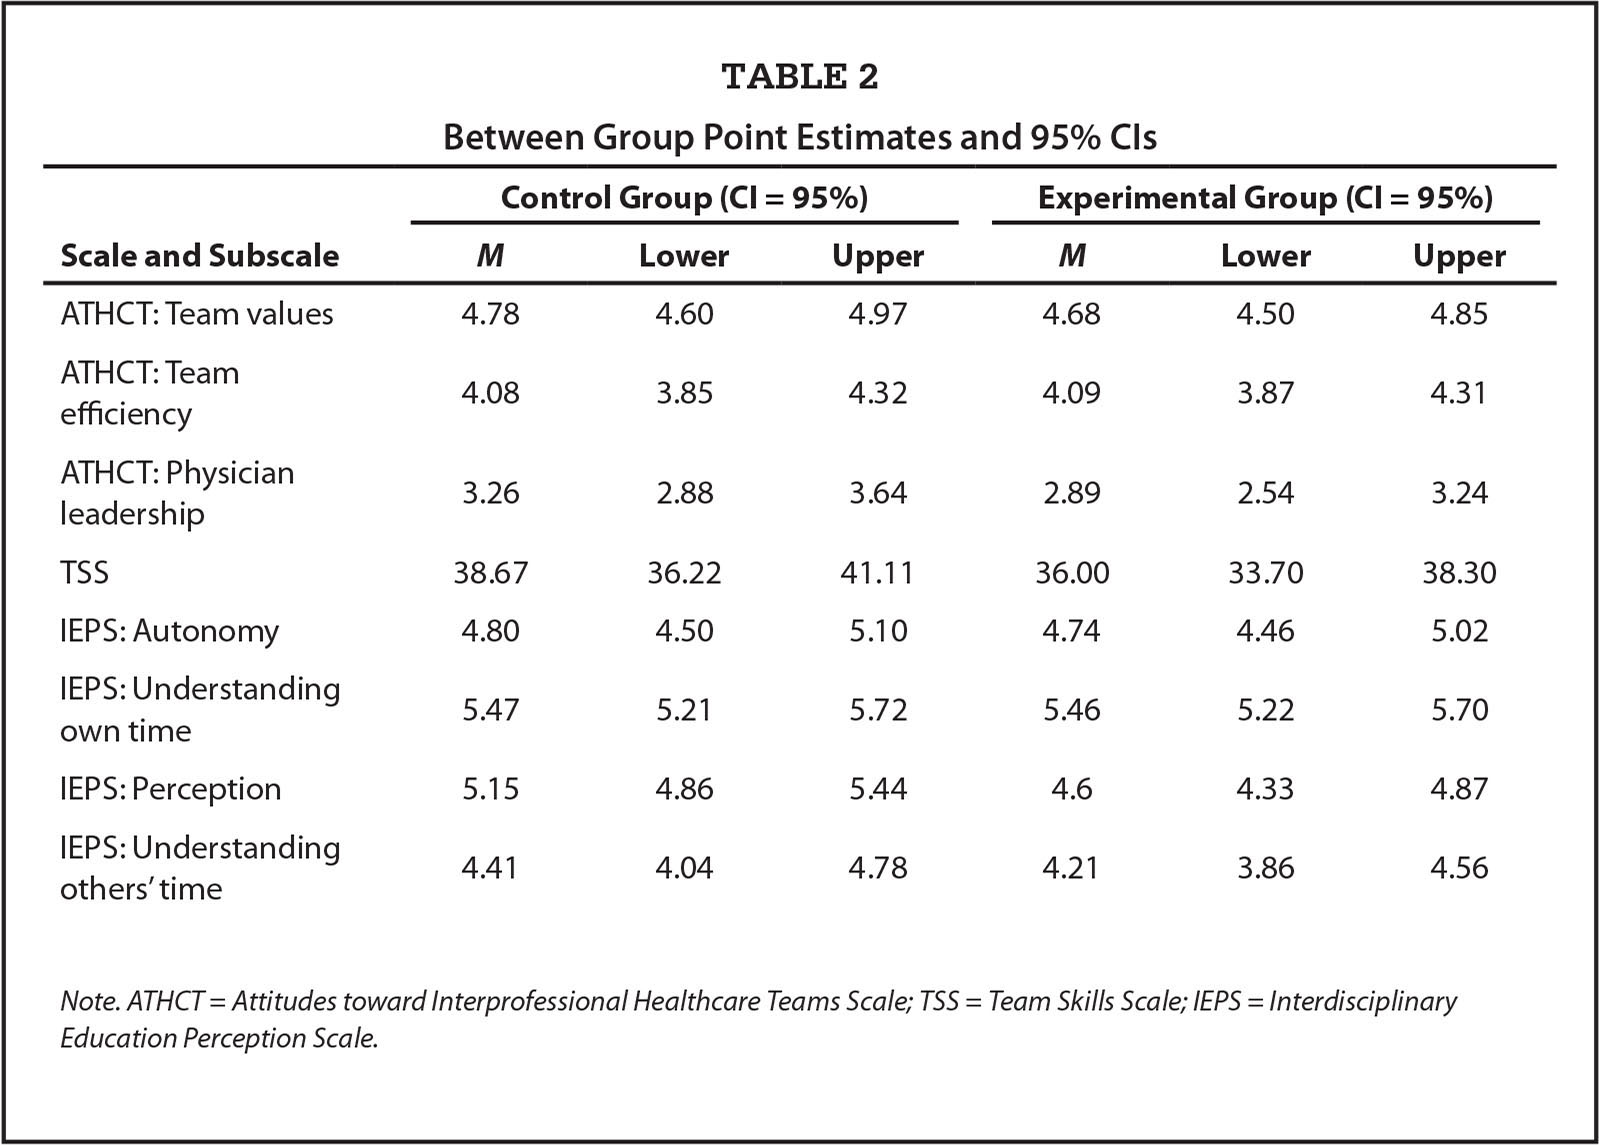 Between Group Point Estimates and 95% CIs